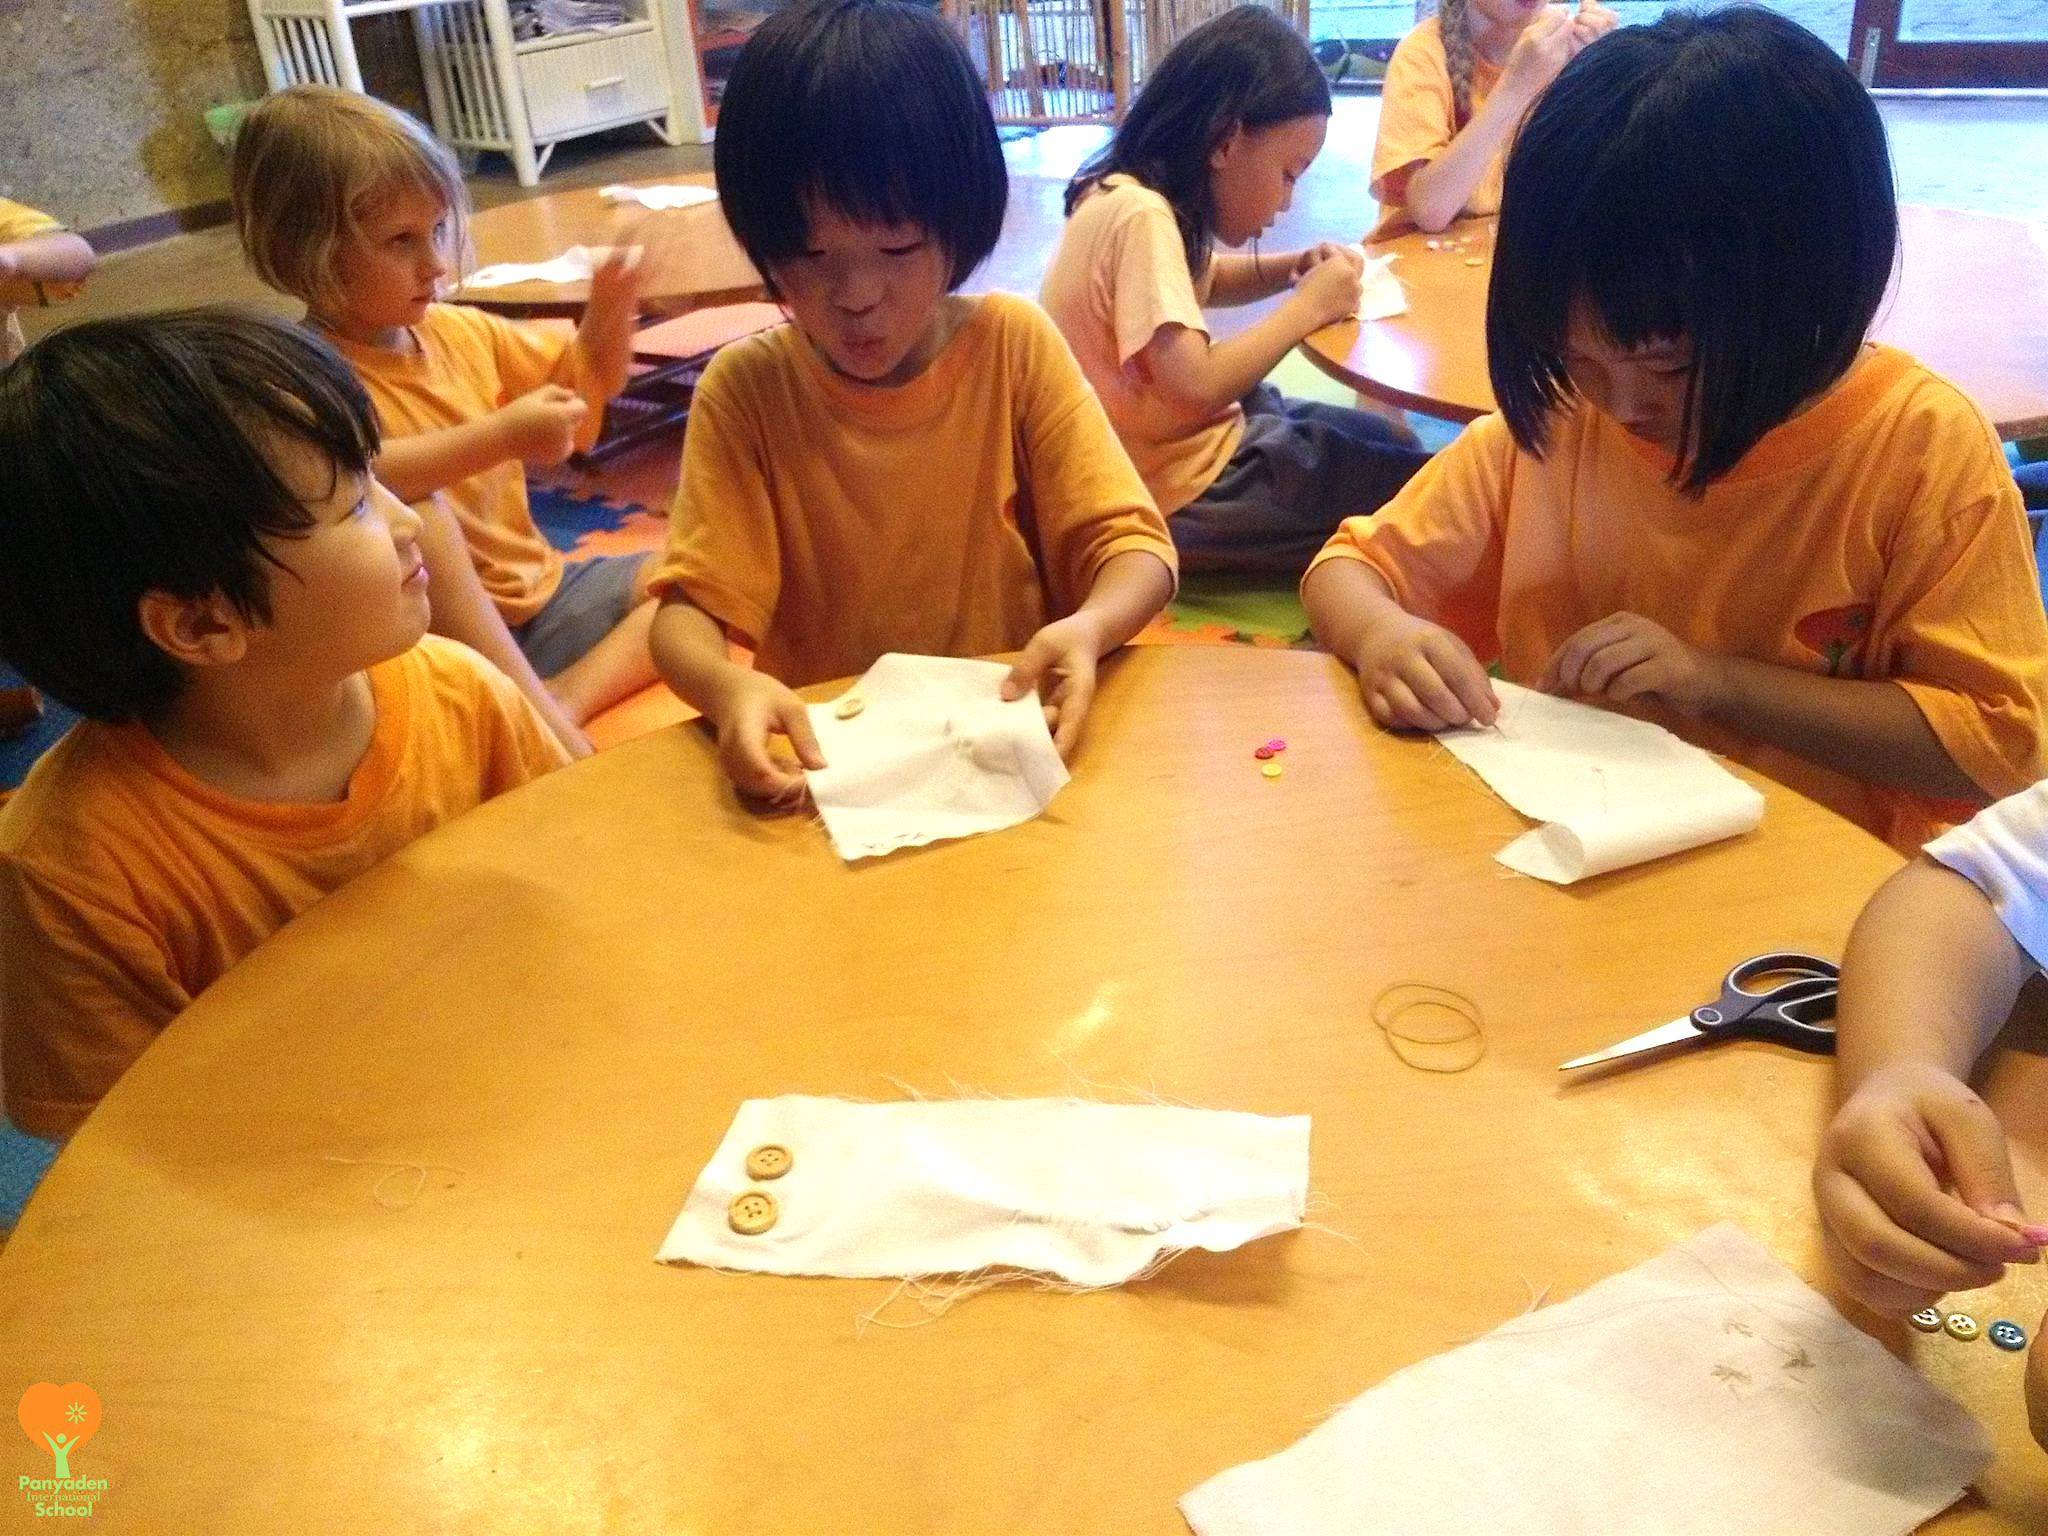 Year 2 students learn to sew on buttons during Panyaden Life Skills class